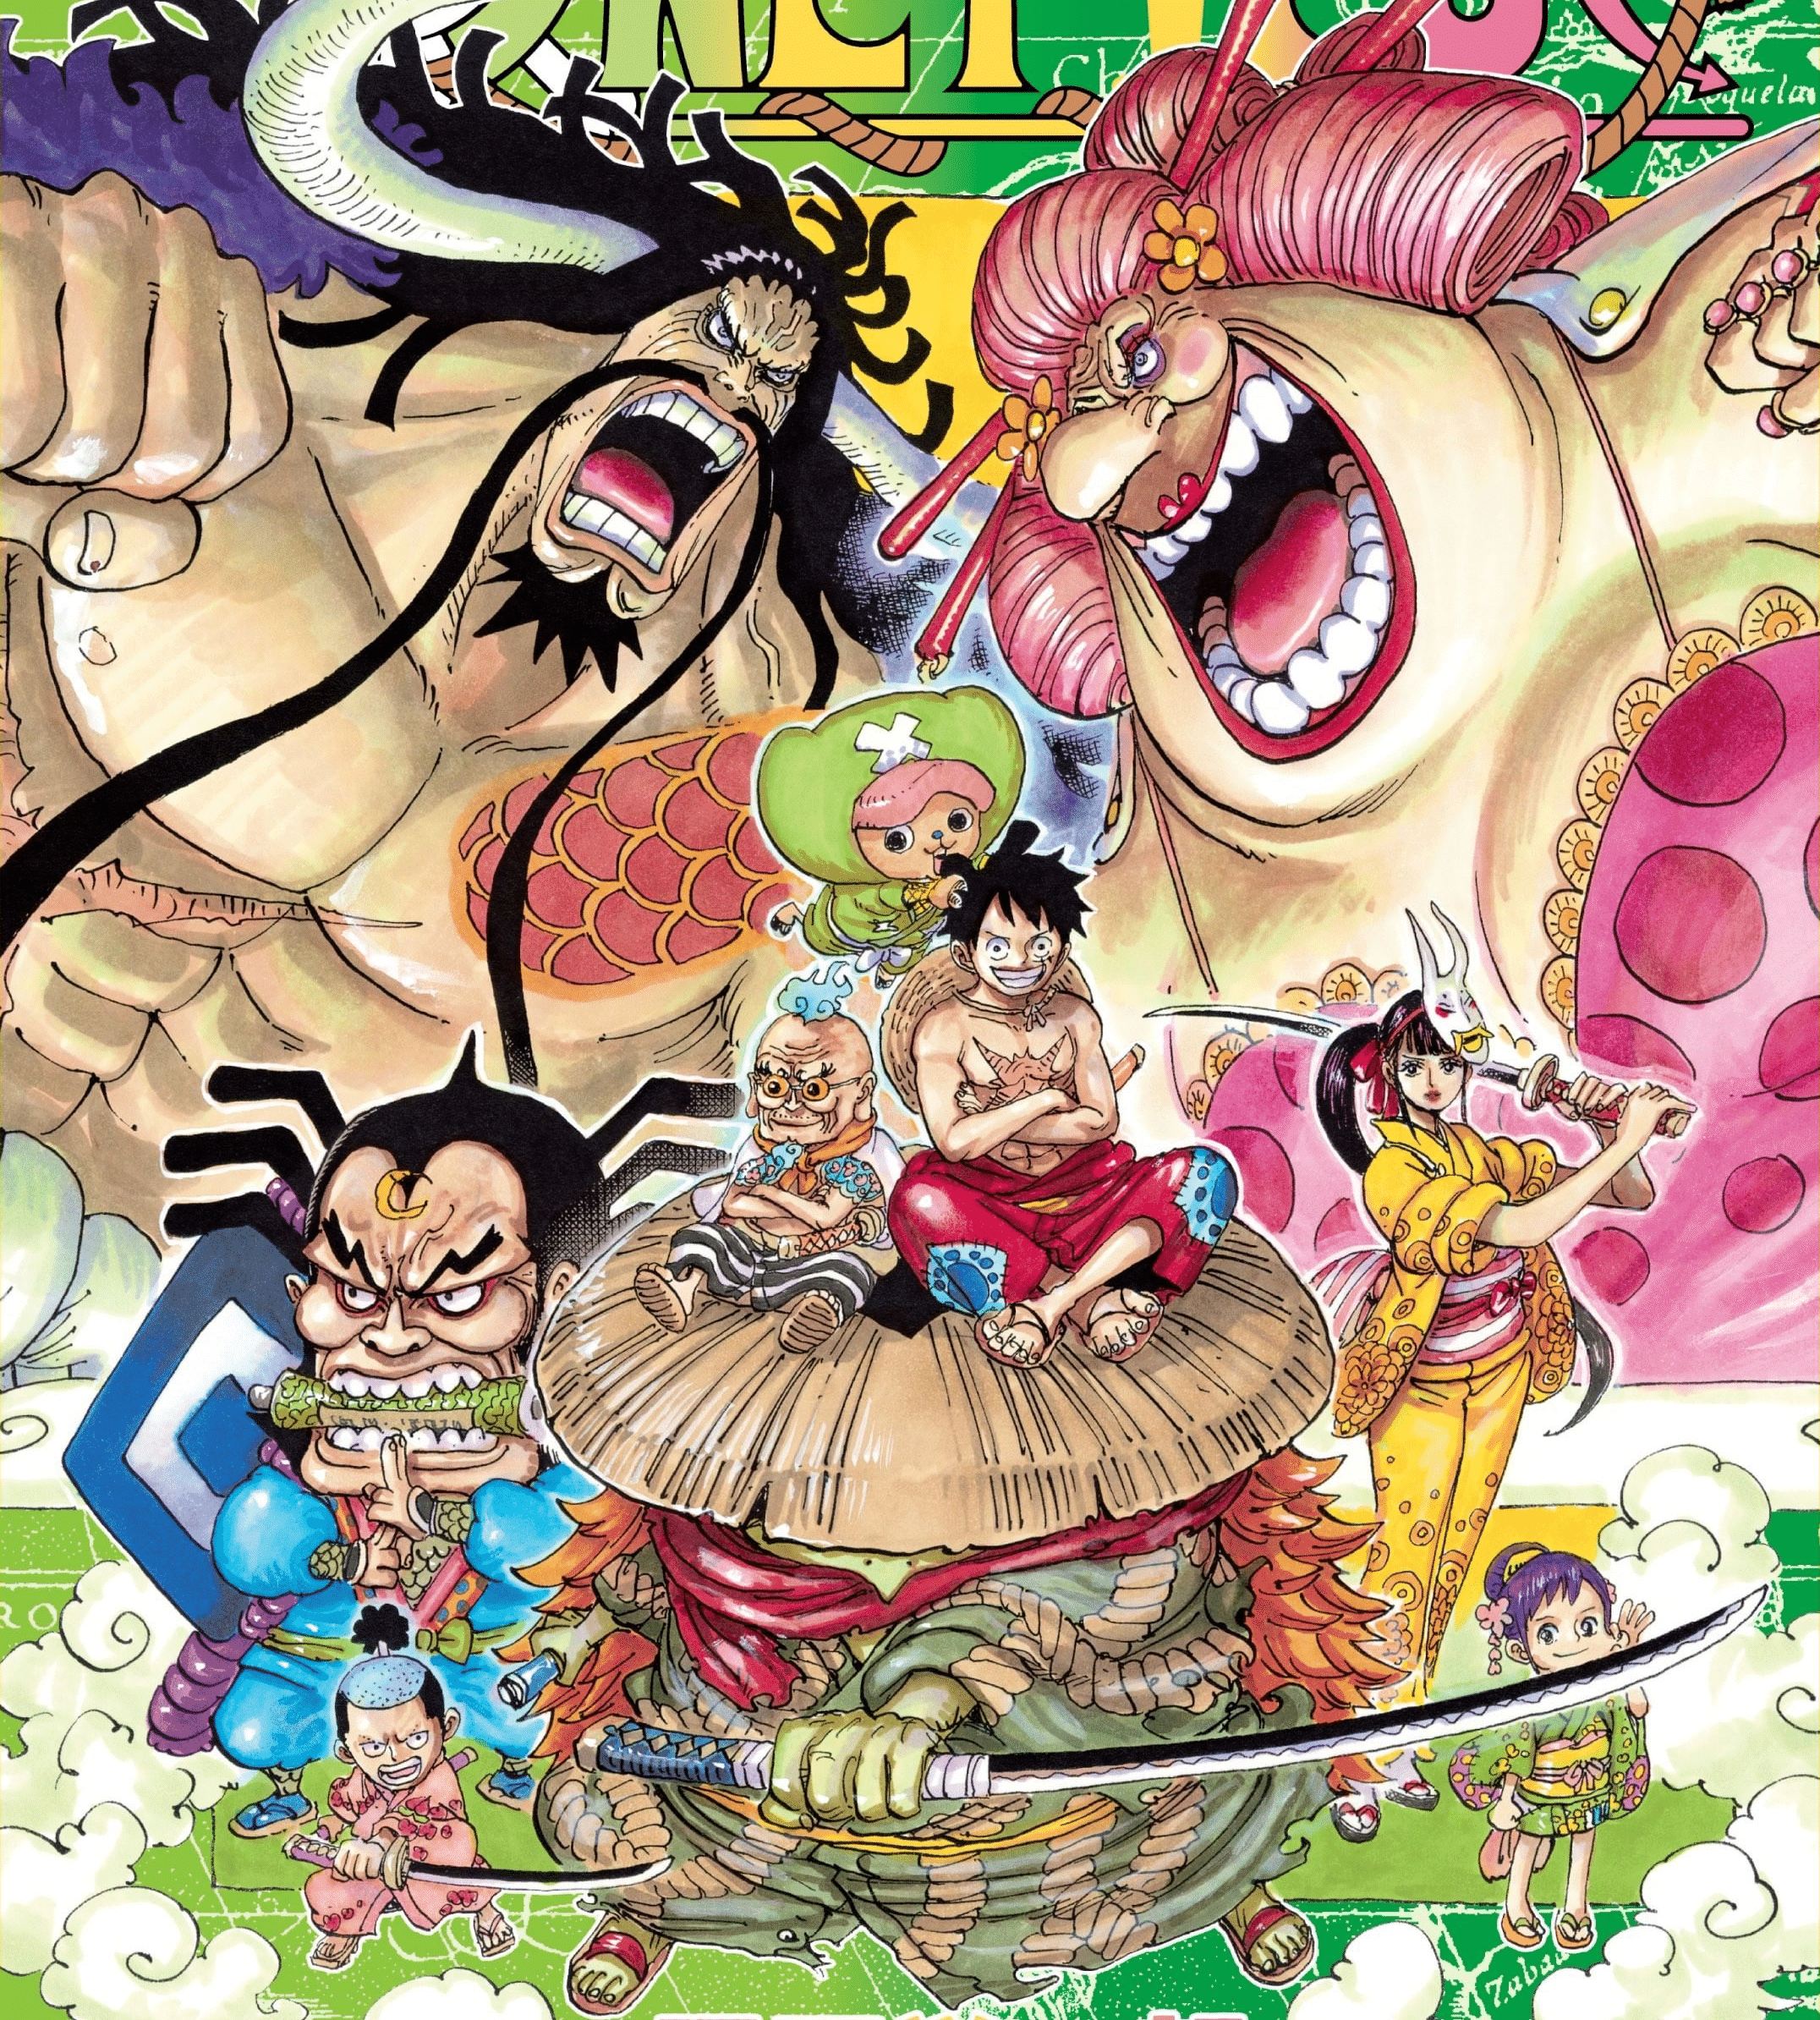 One Piece Mangaka Eiichiro Oda Plans to Reach Chapter 1000 Before Year's End